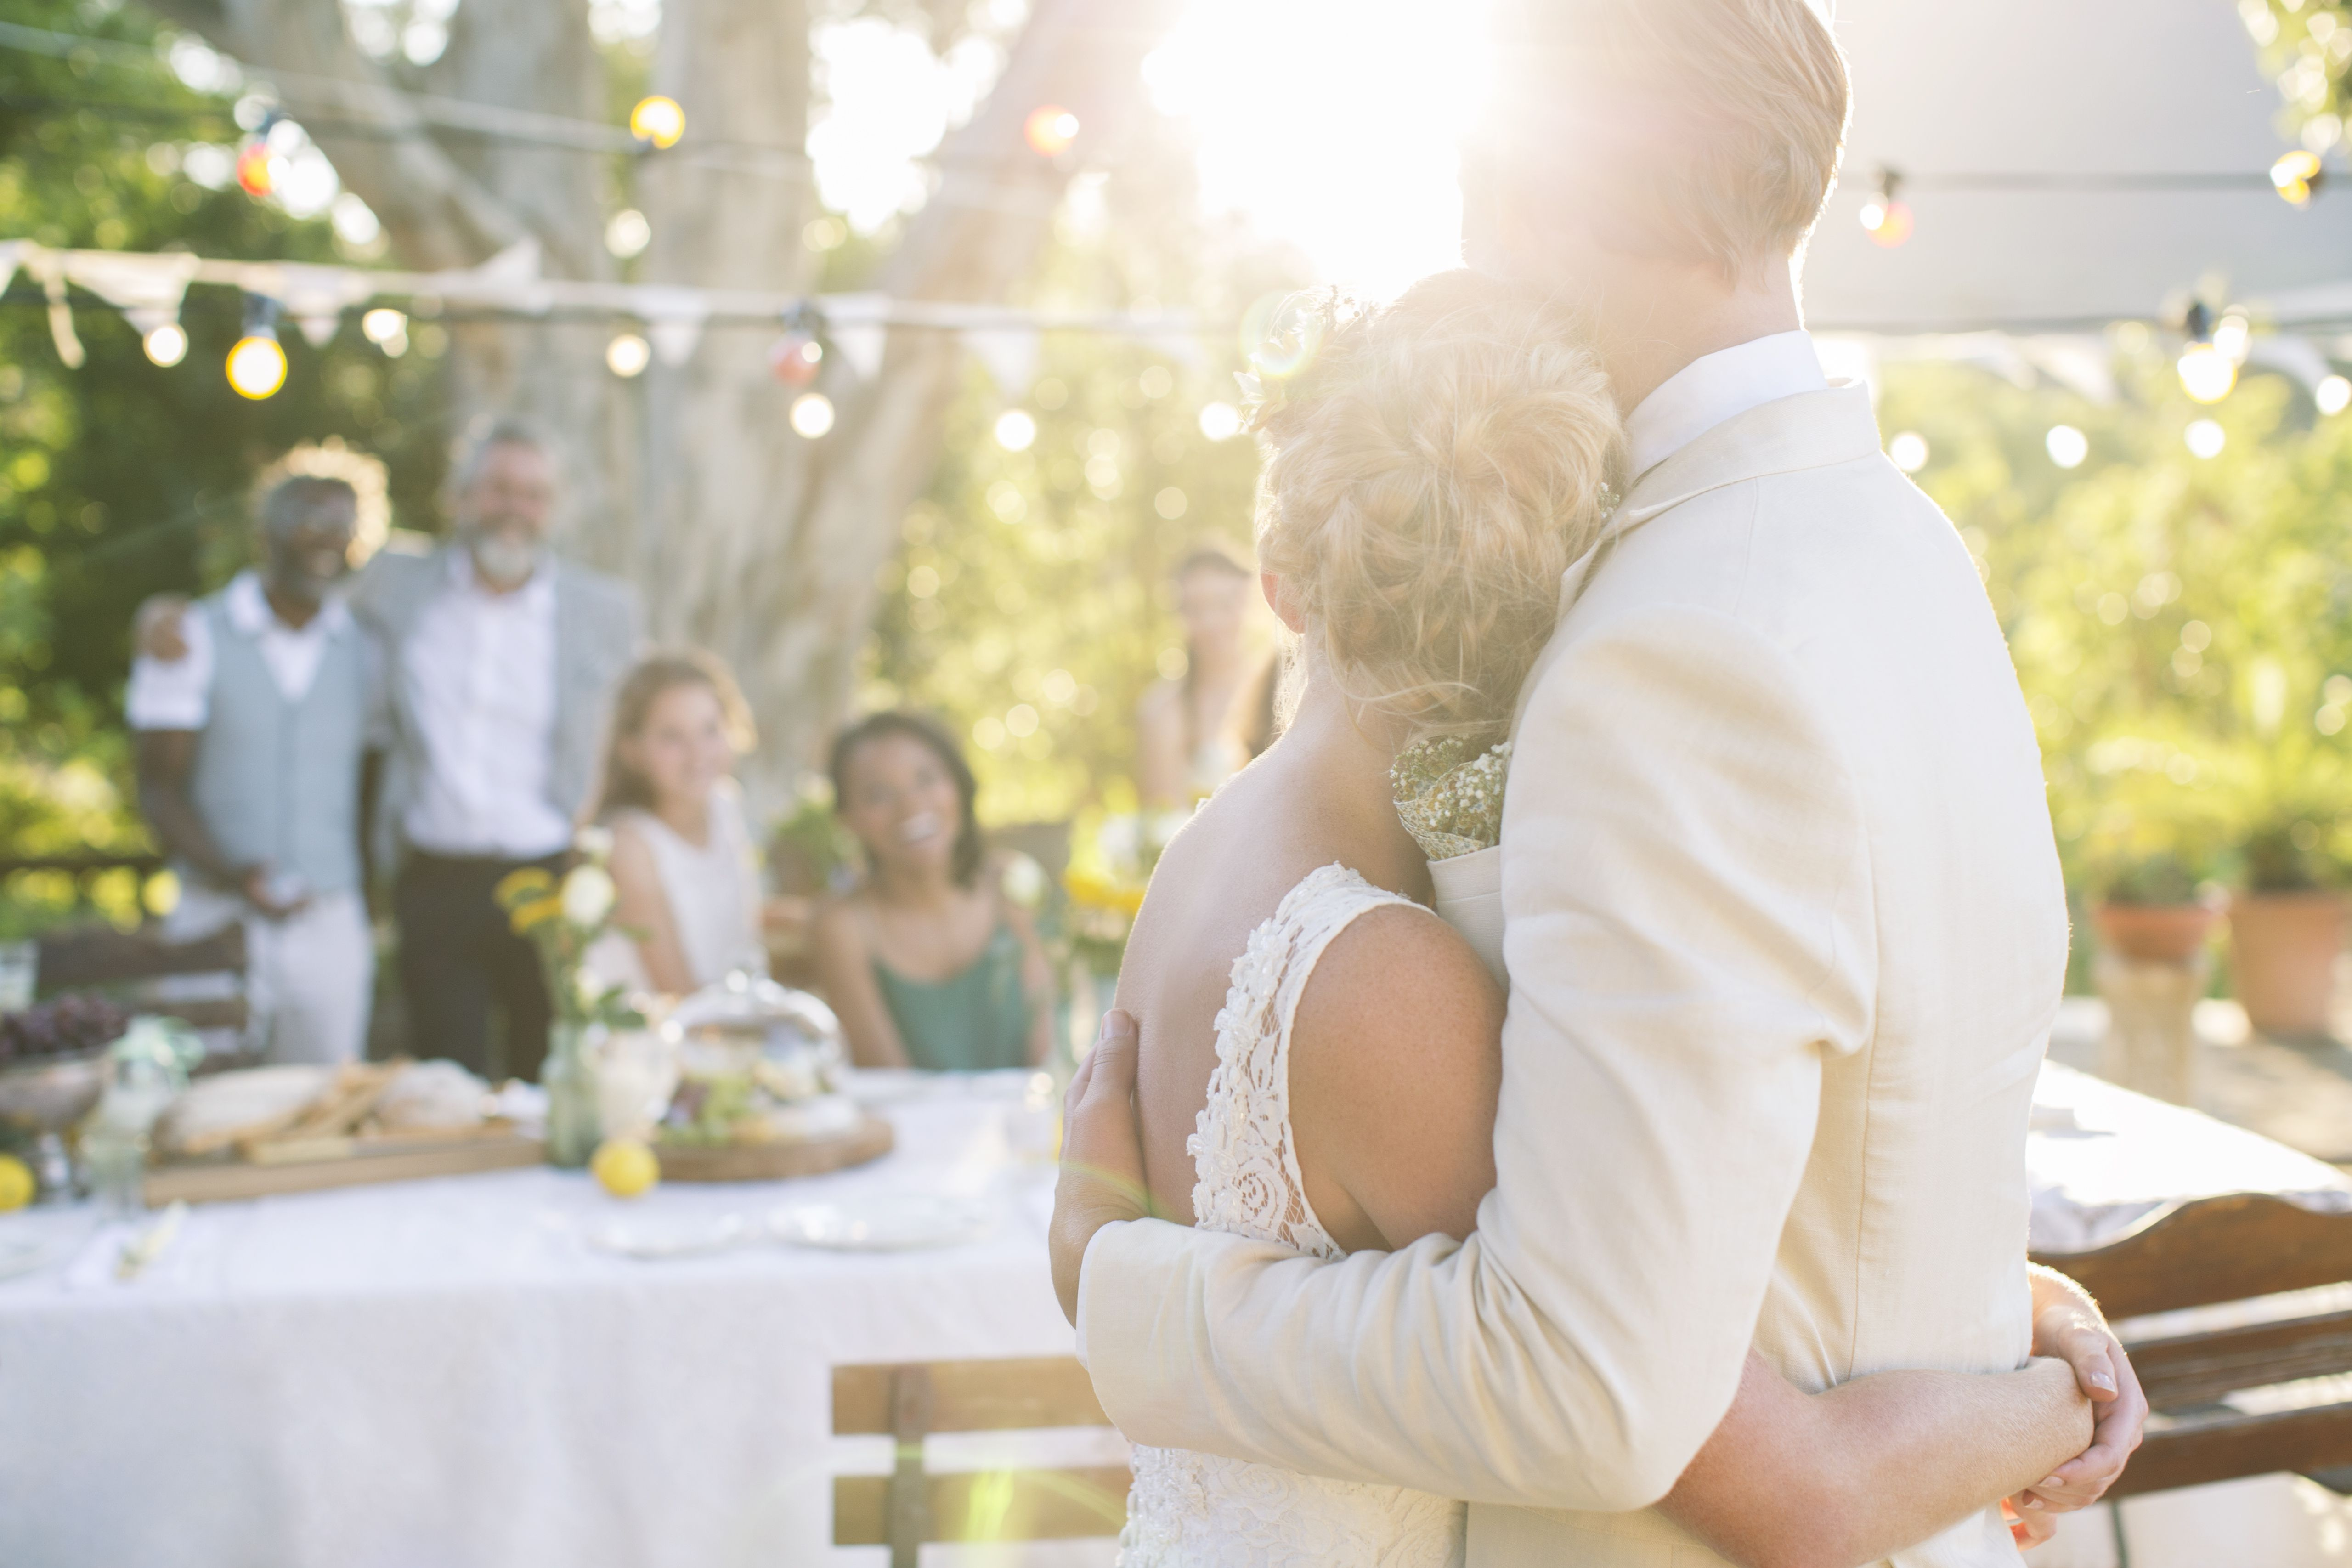 Wedding Gifts For Young Couples: Romantic Poems To Read At A Wedding Ceremony